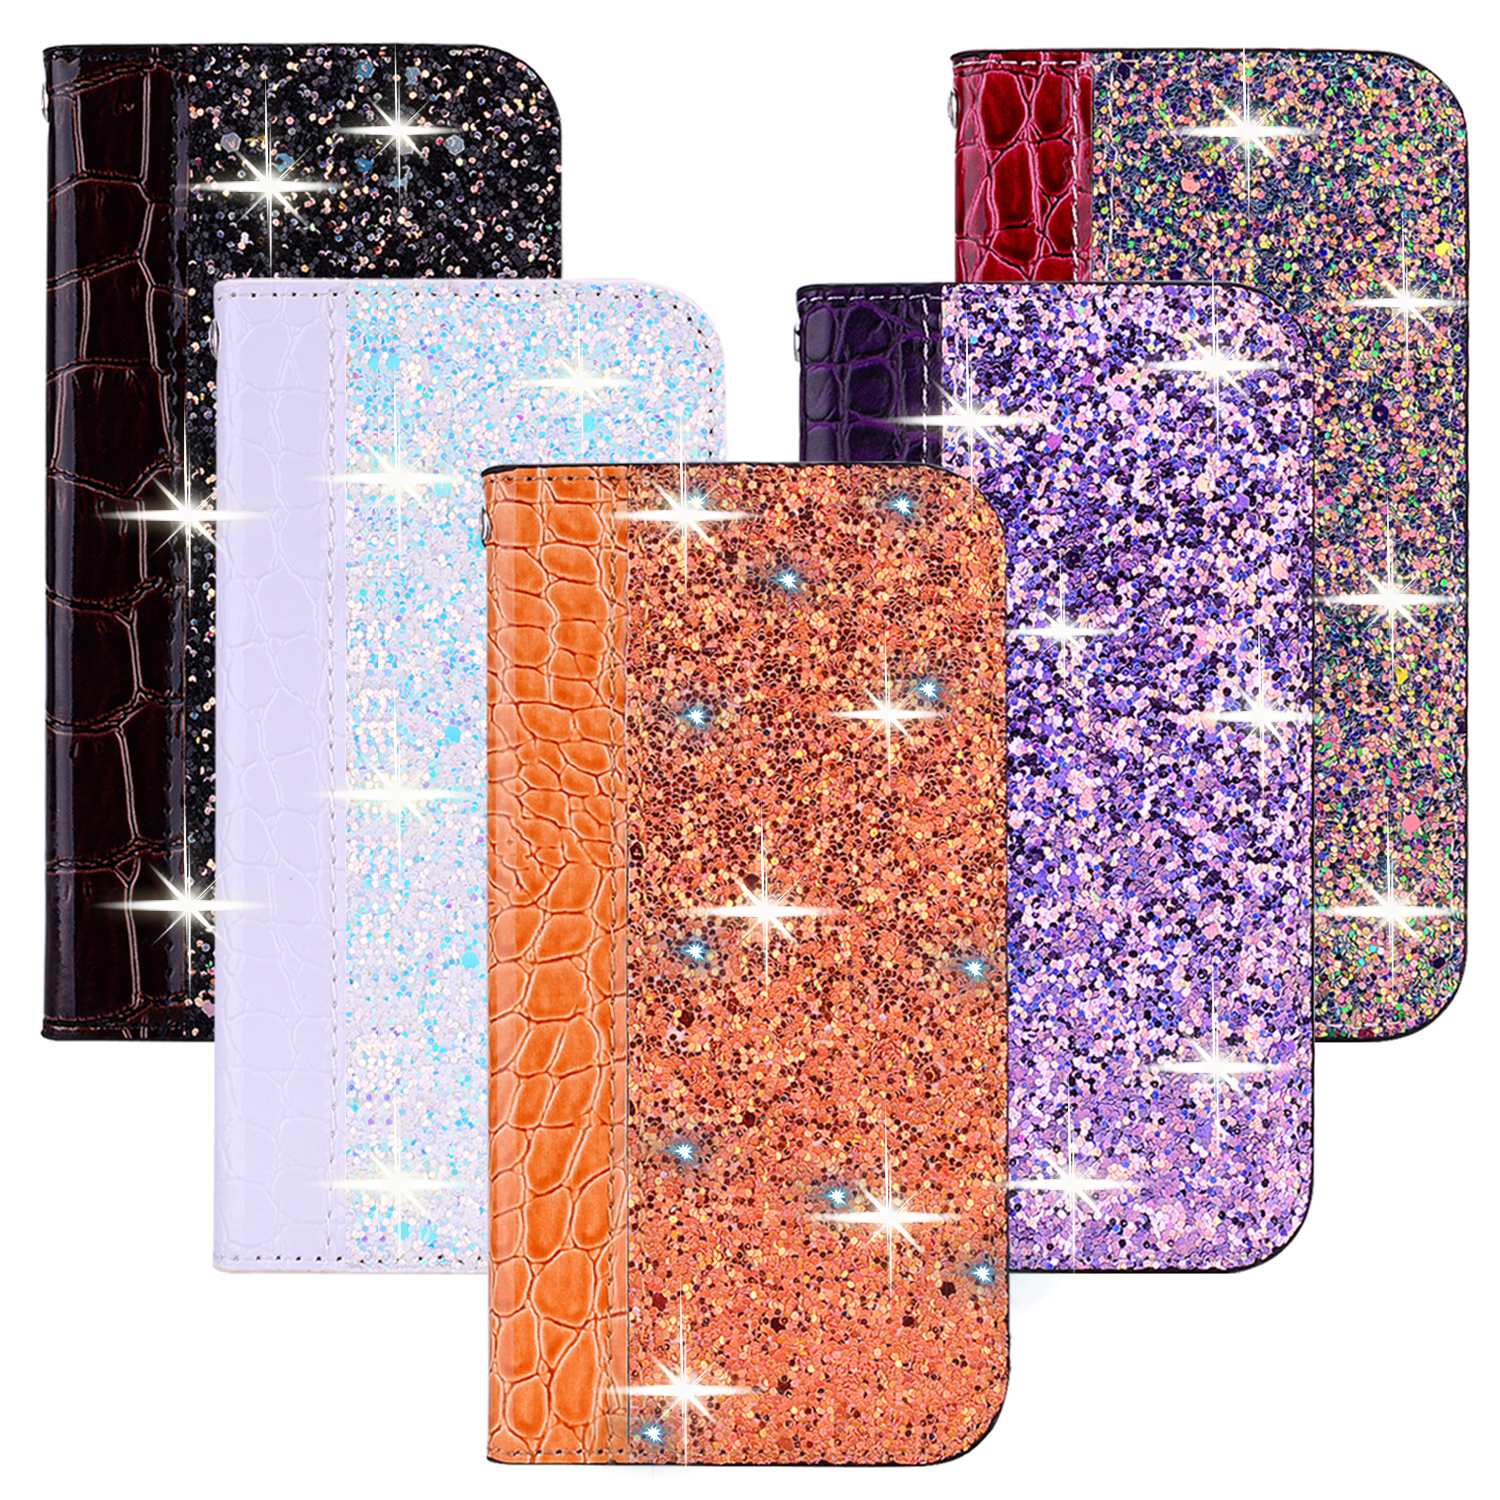 Glitter Bling <font><b>Case</b></font> For <font><b>Samsung</b></font> J3 J4 J5 J6 <font><b>J7</b></font> J8 <font><b>2017</b></font> Leather <font><b>Flip</b></font> Book <font><b>Case</b></font> Coque for Galaxy A50 A70 A40 A6 Plus A7 A5 A8 2018 image